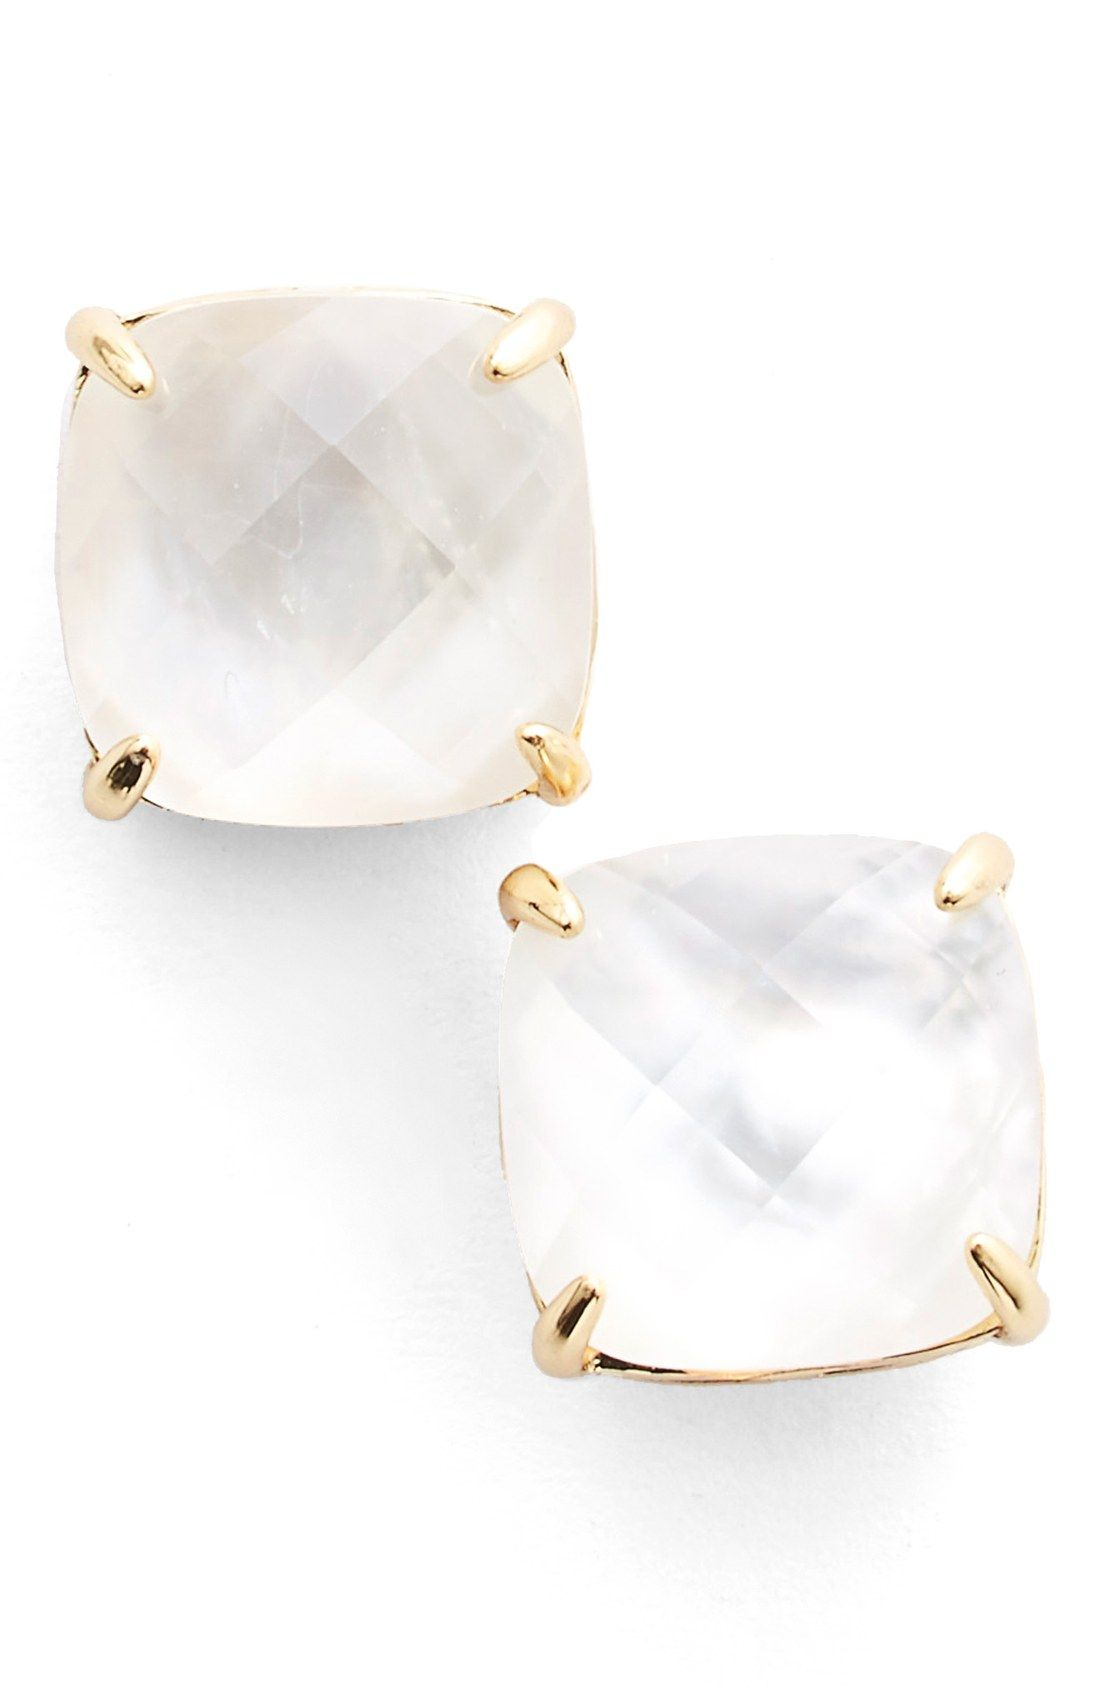 stunning mother-of-pearl and gold stud earrings @nordstrom #nordstrom